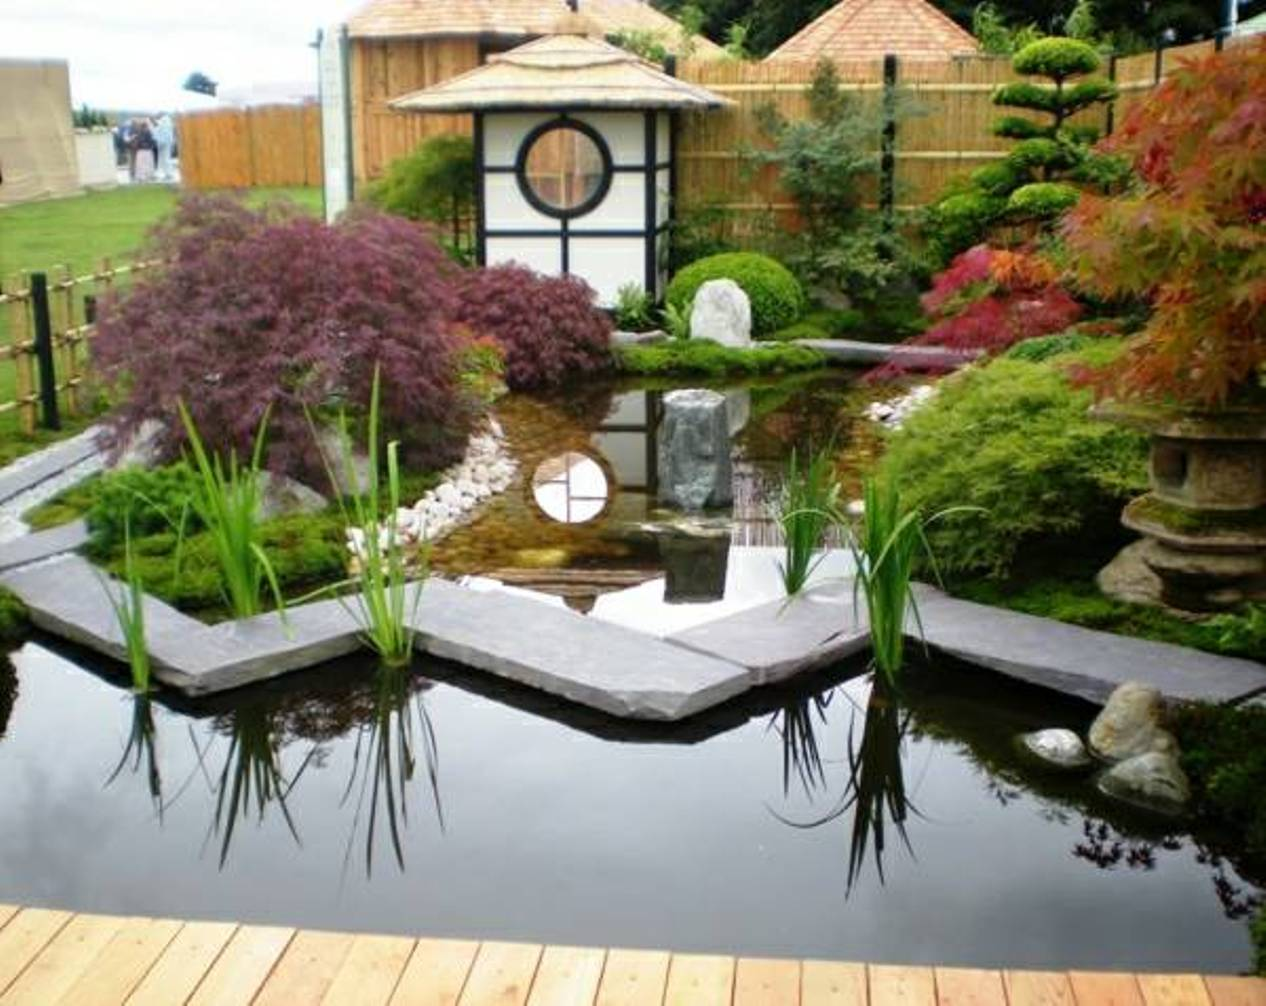 Pond design inspiration pond stars uk ltd dorset for Modern garden pond designs